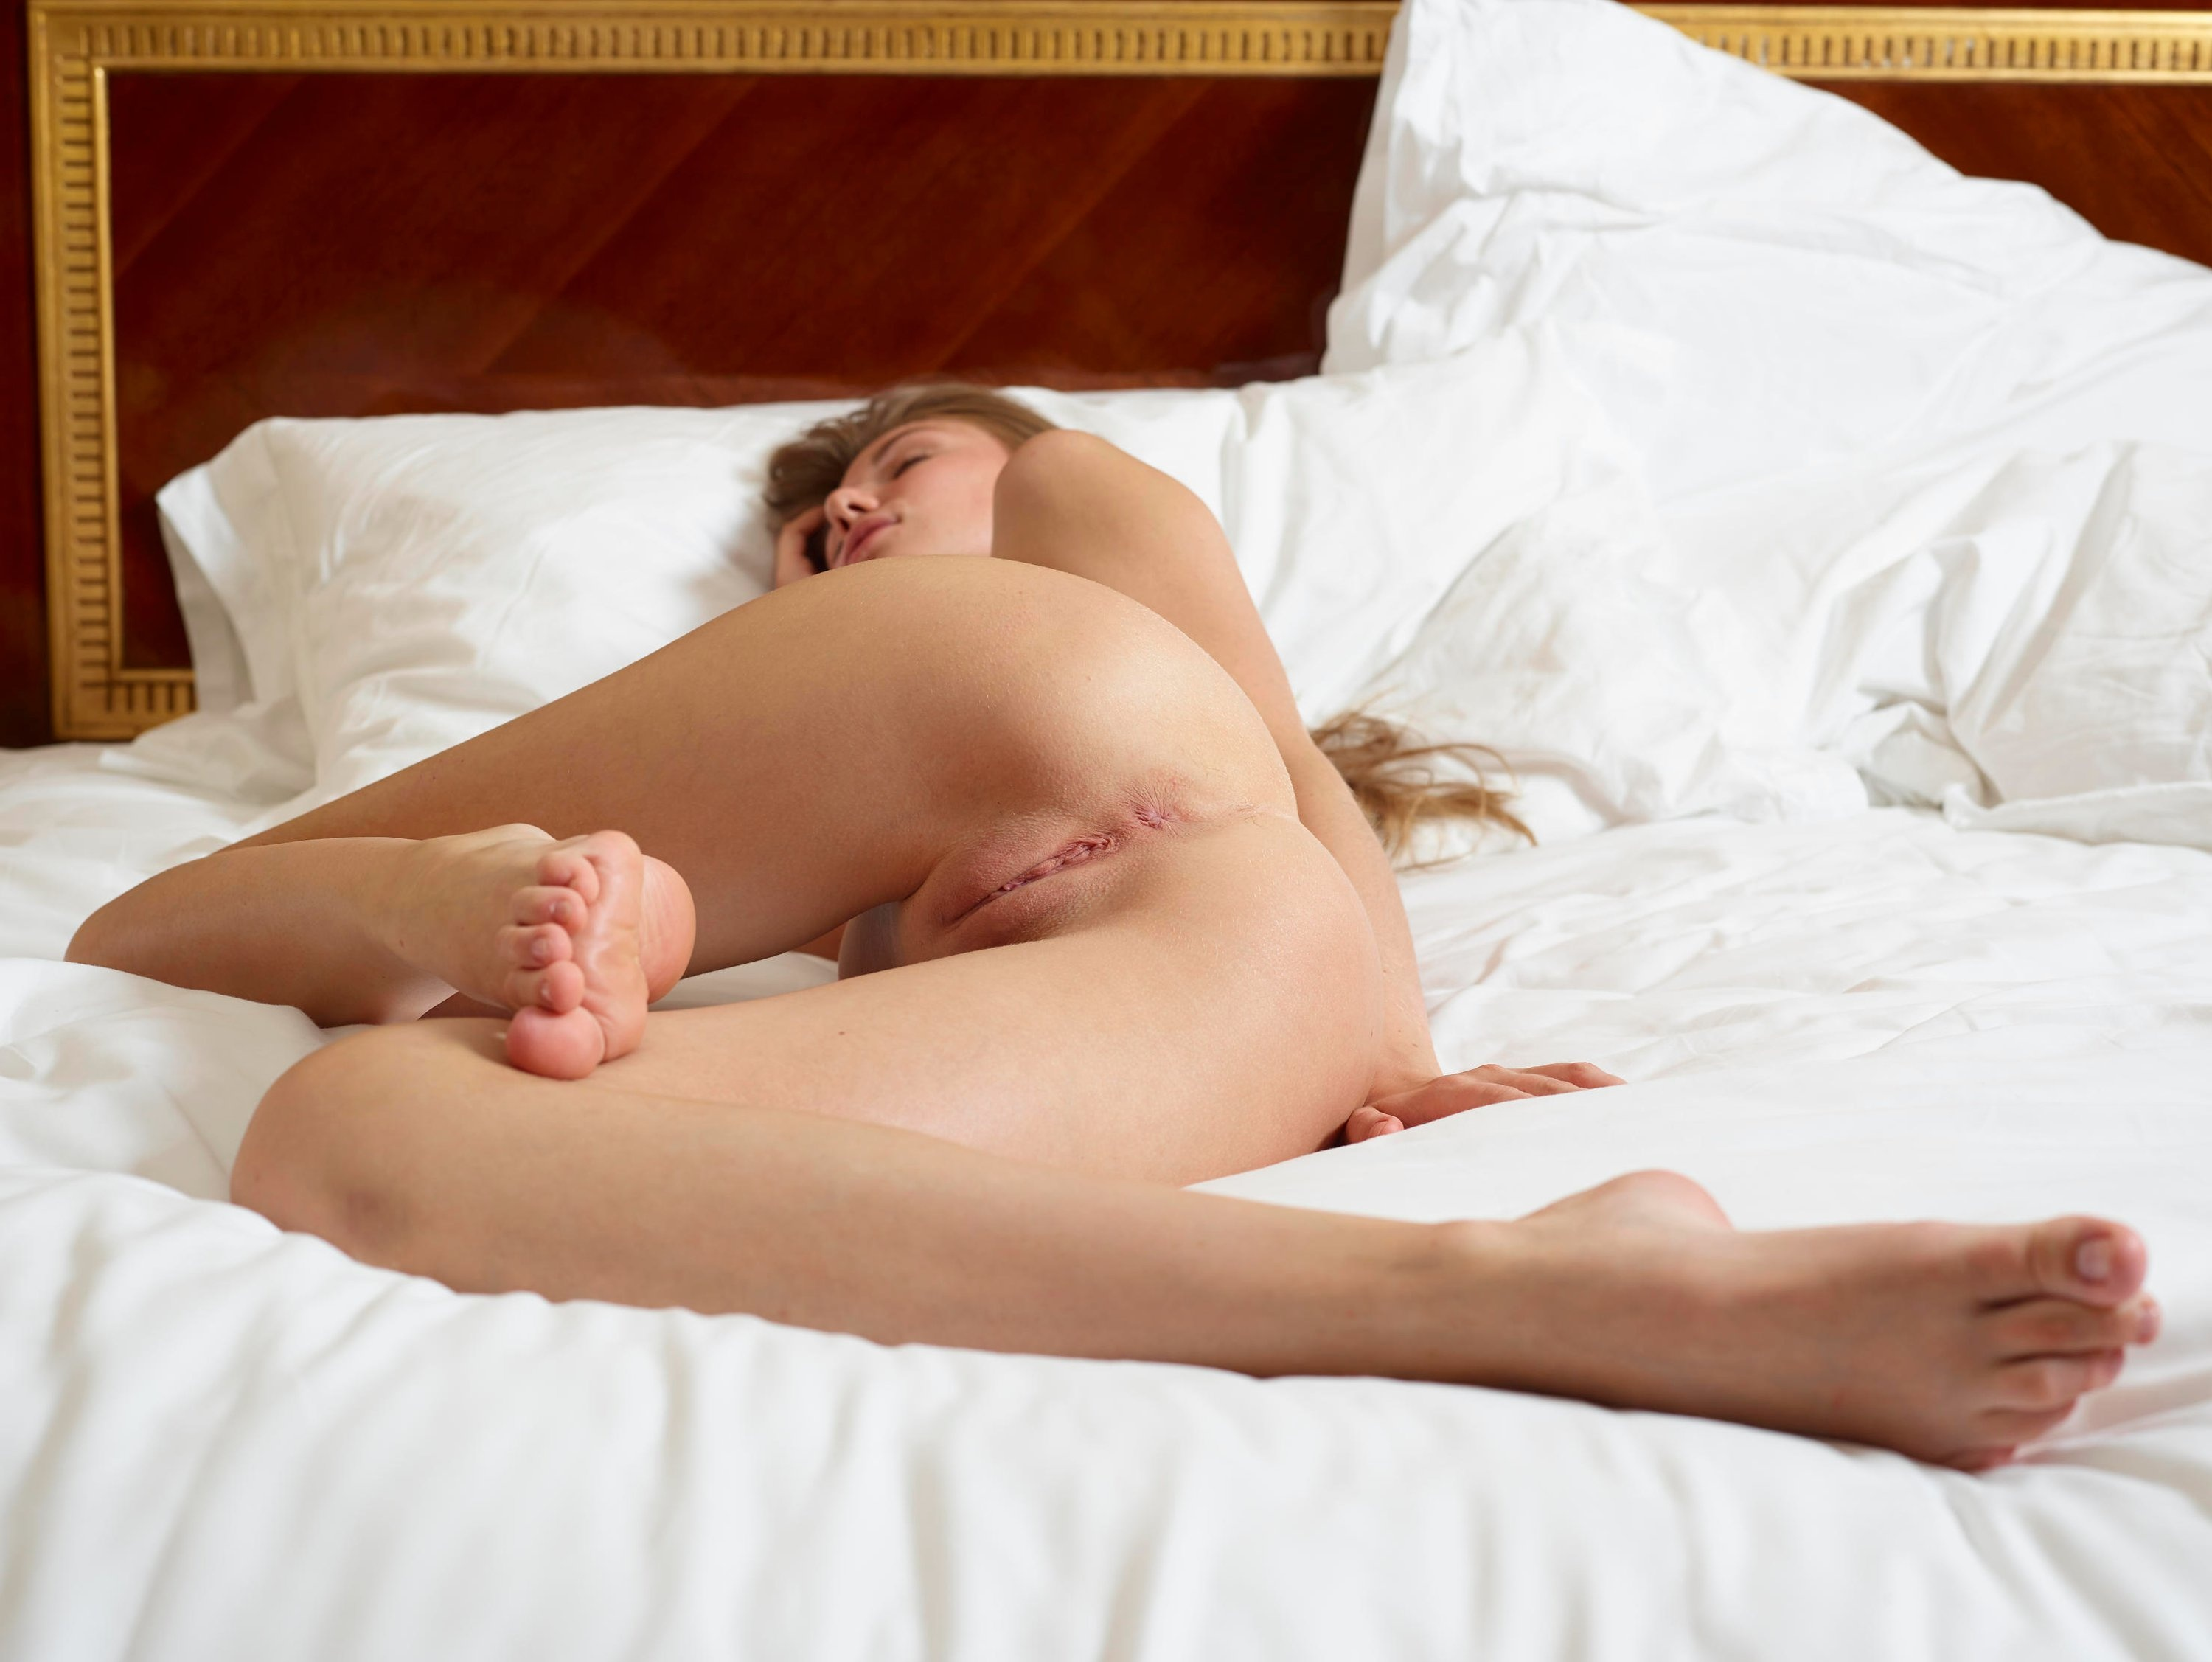 naked-girls-in-bedroom-nude-mix-vol4-60